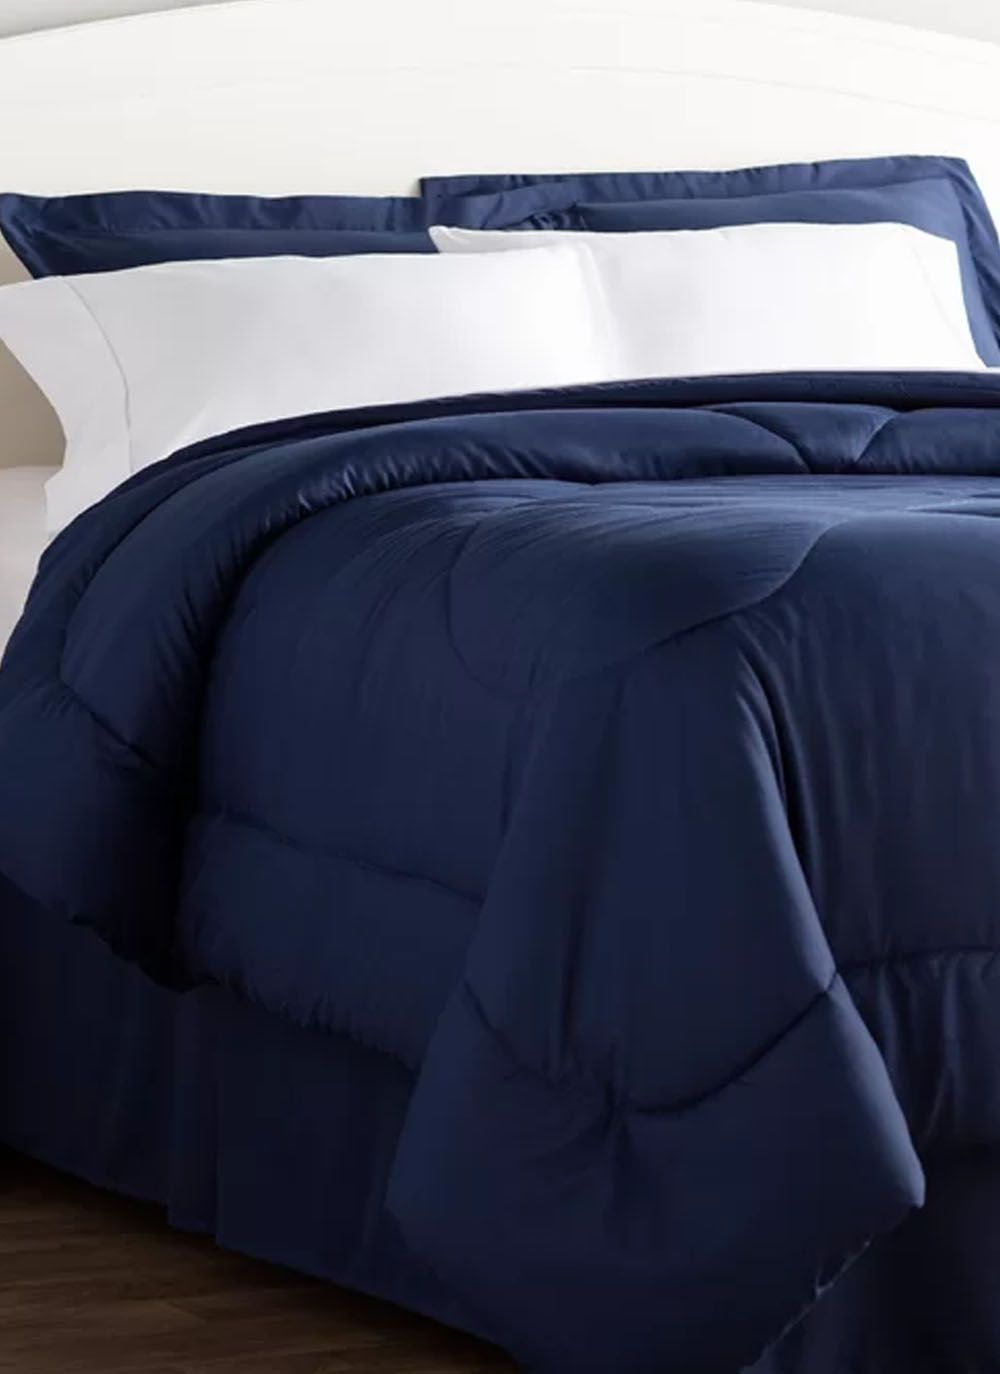 1eb61caa64c5 5 Best Bedding Sets - Top-Rated Bed in a Bag Sets